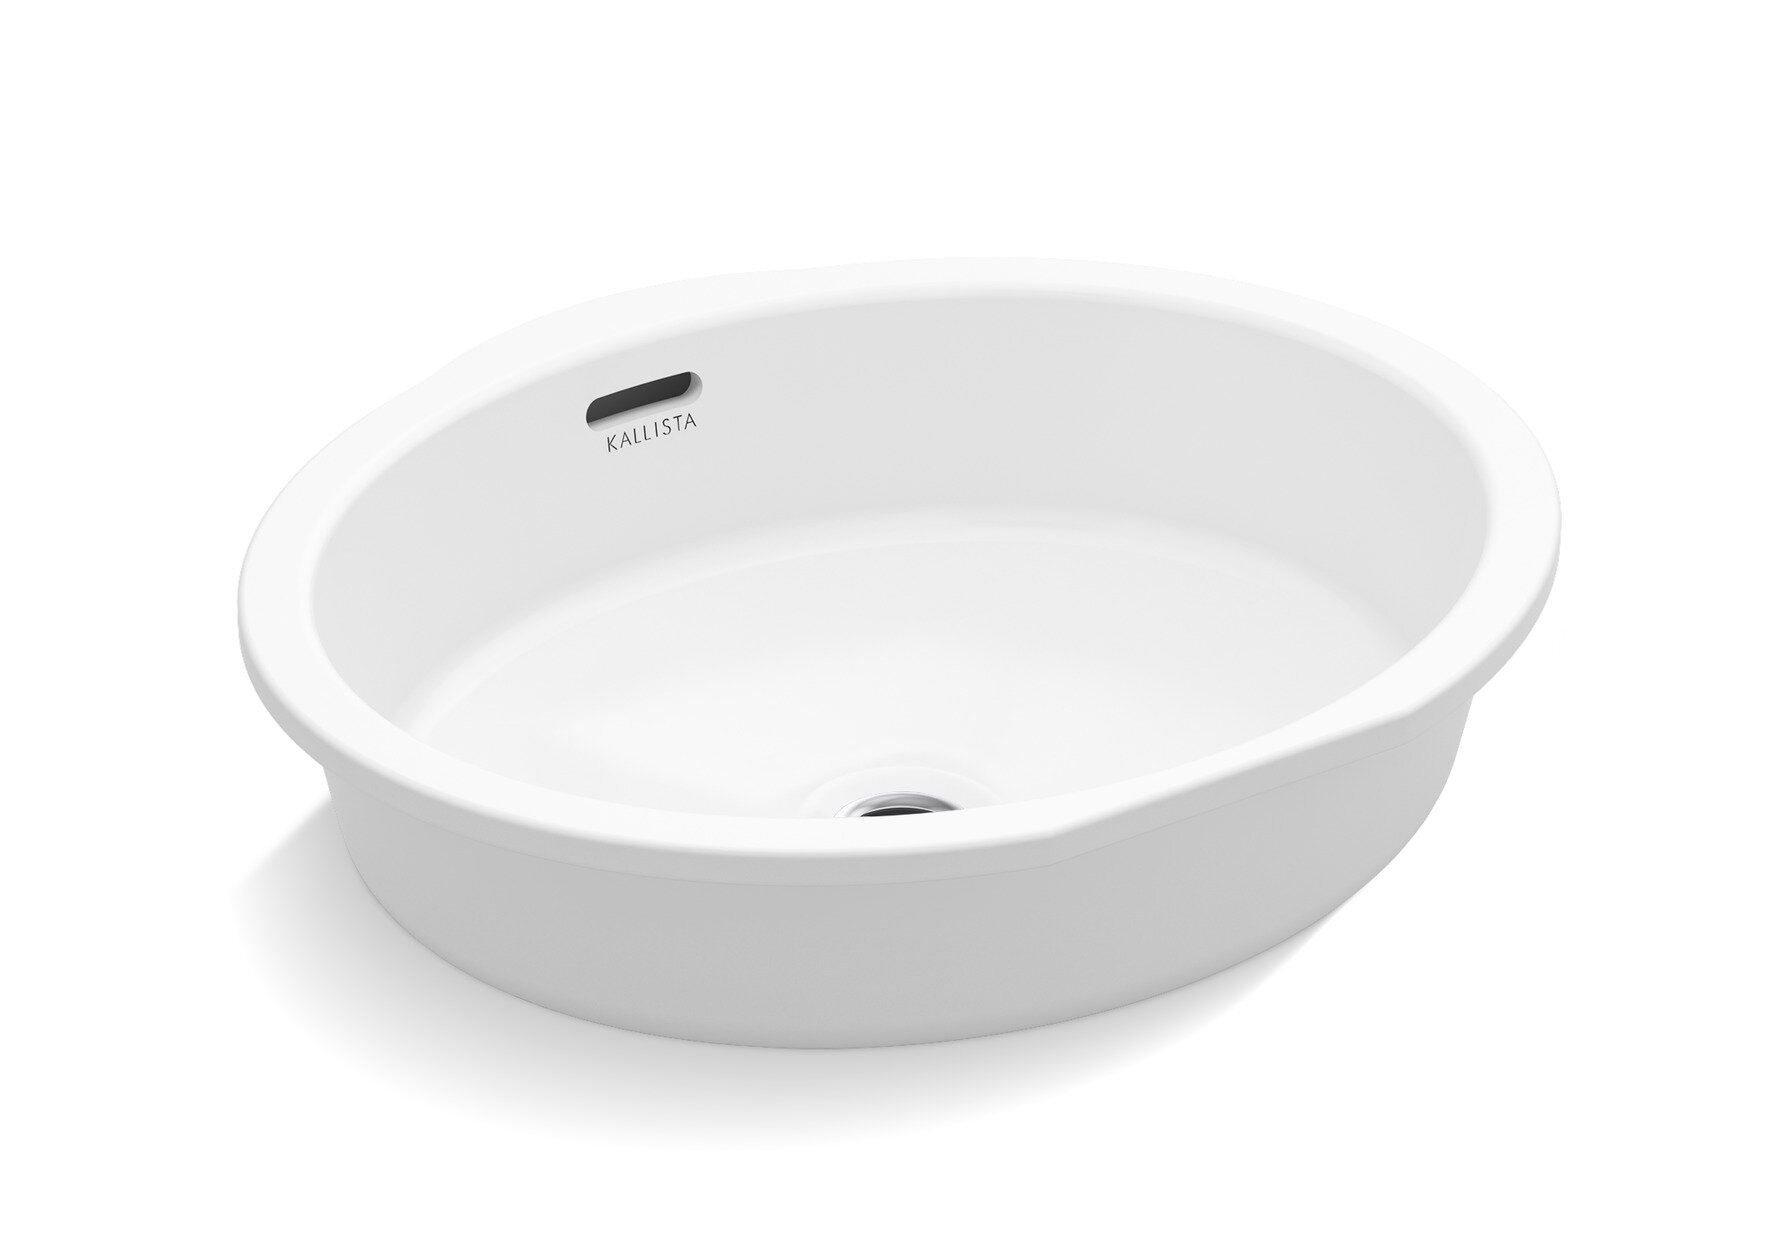 Kallista Perfect Centric Oval Undermount Sink with Overflow | Wayfair